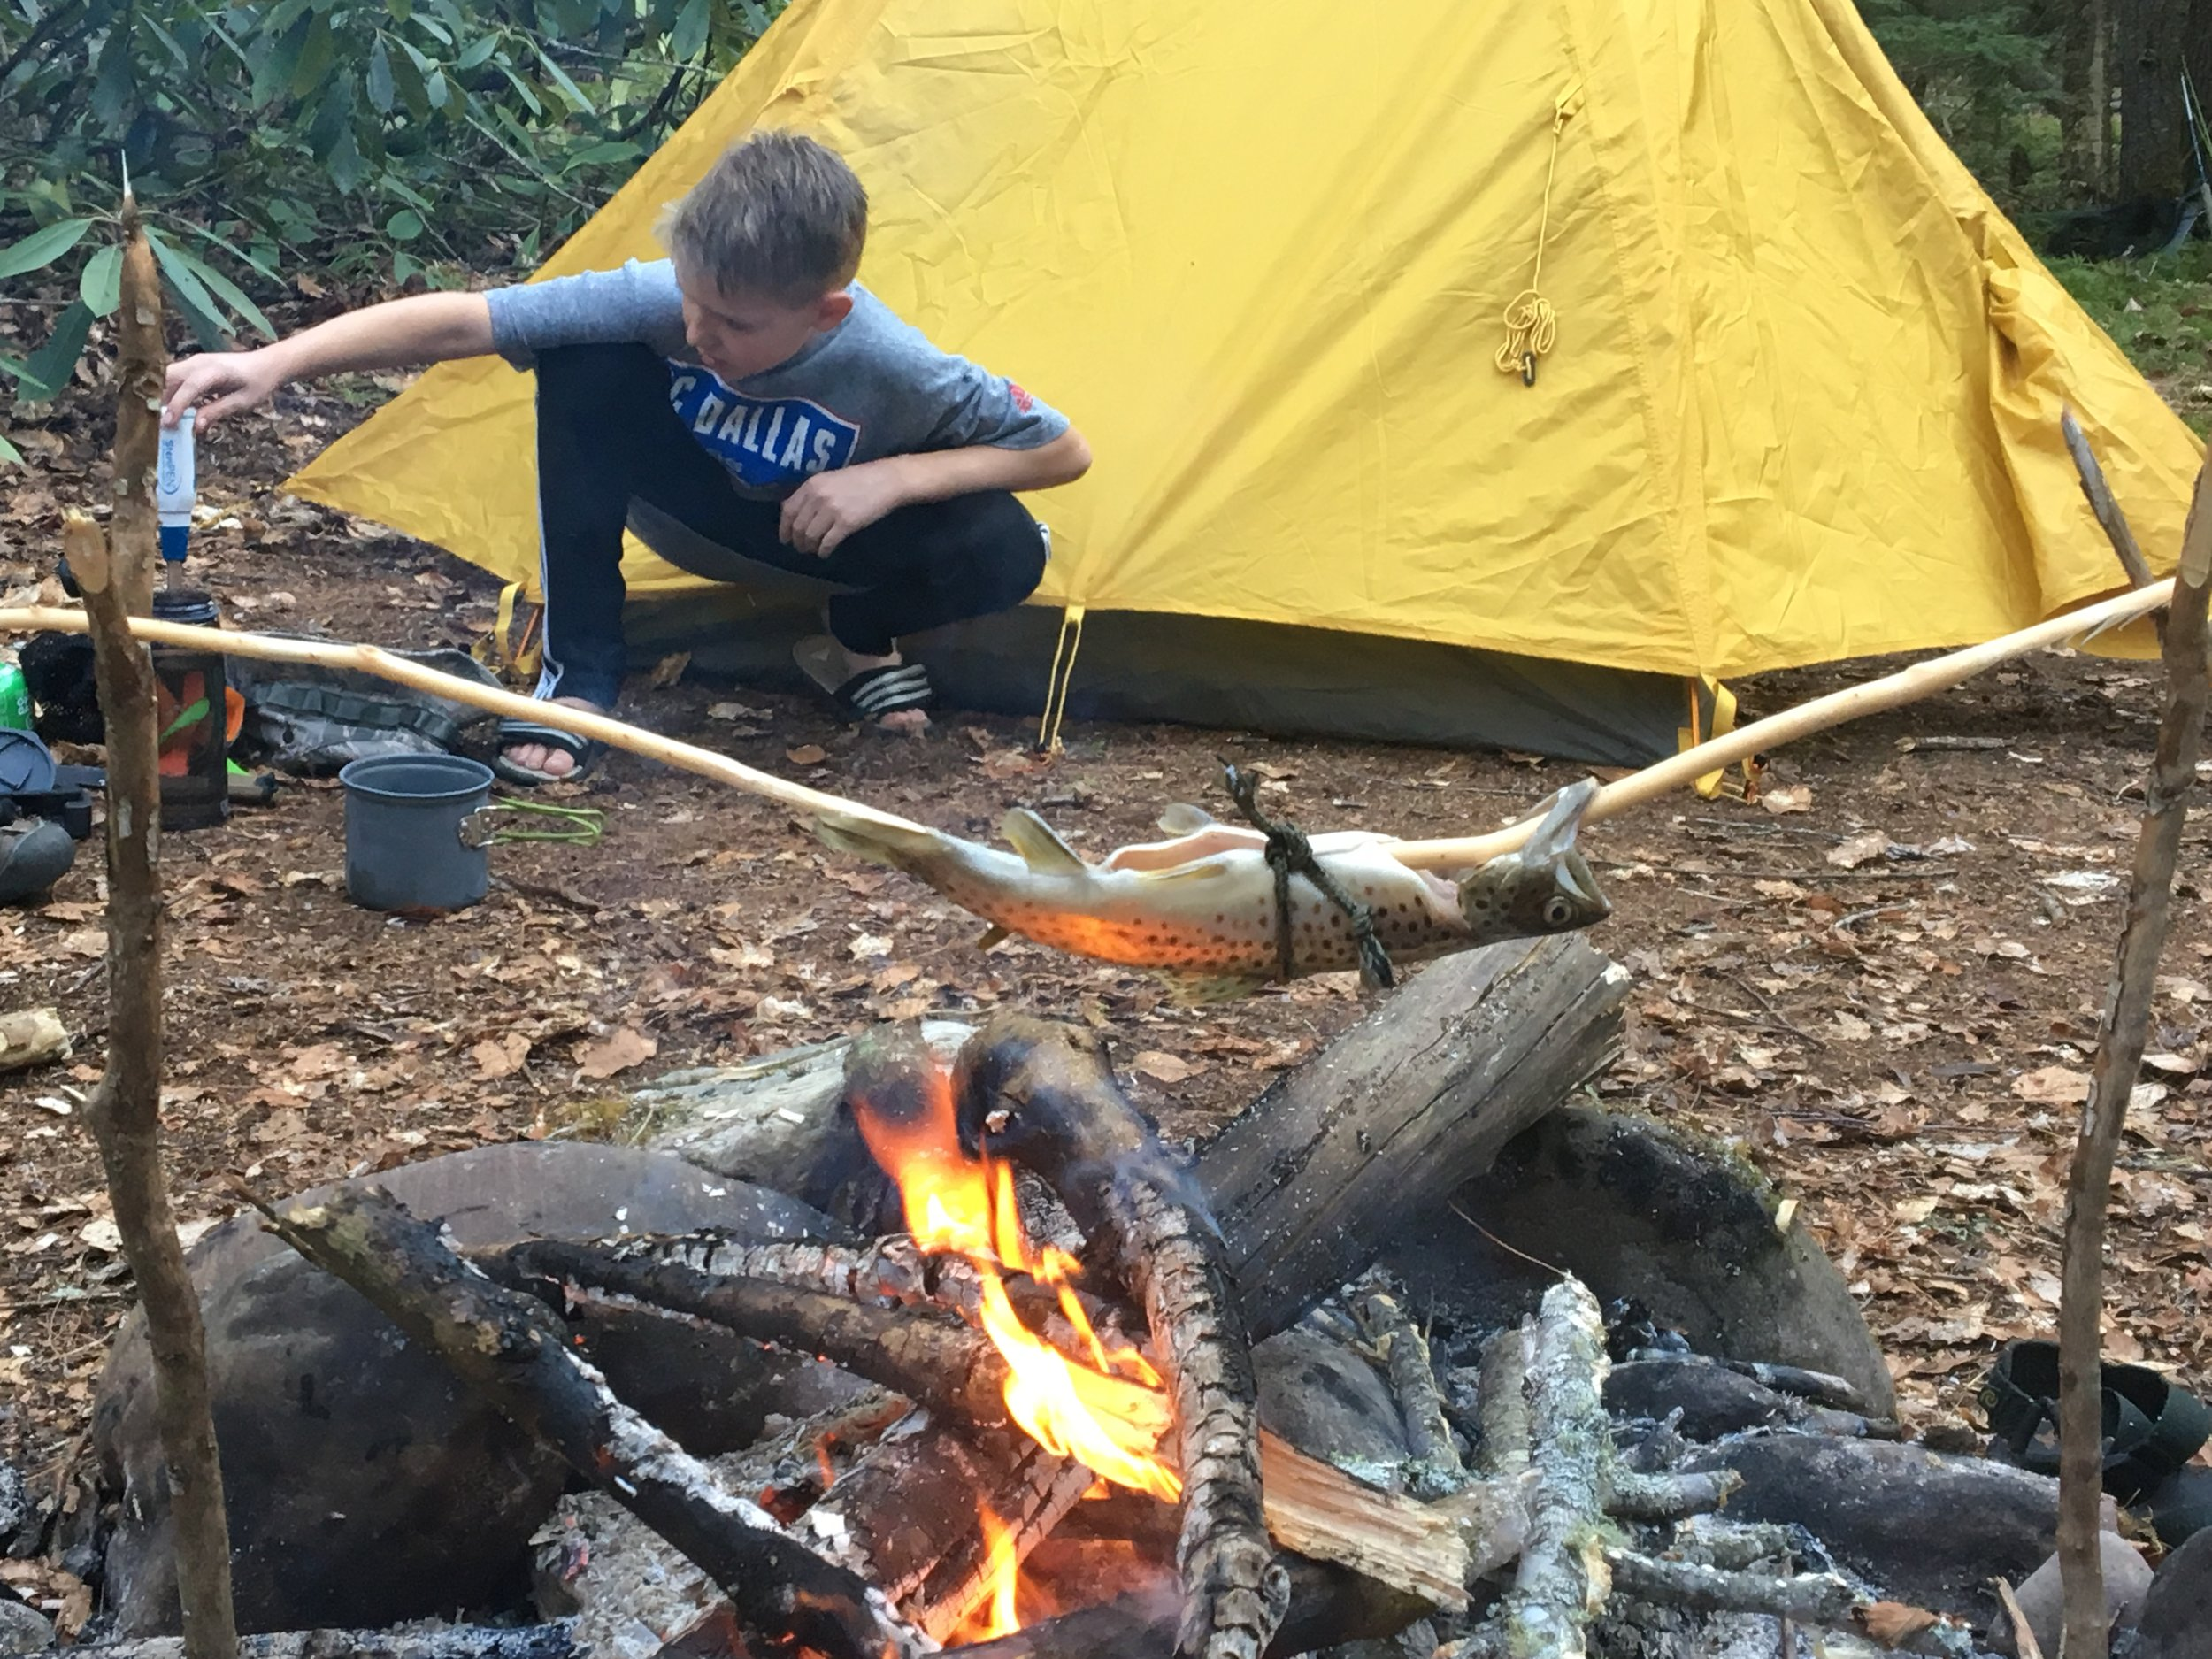 My son, Braeden, cooking a trout over the fire.